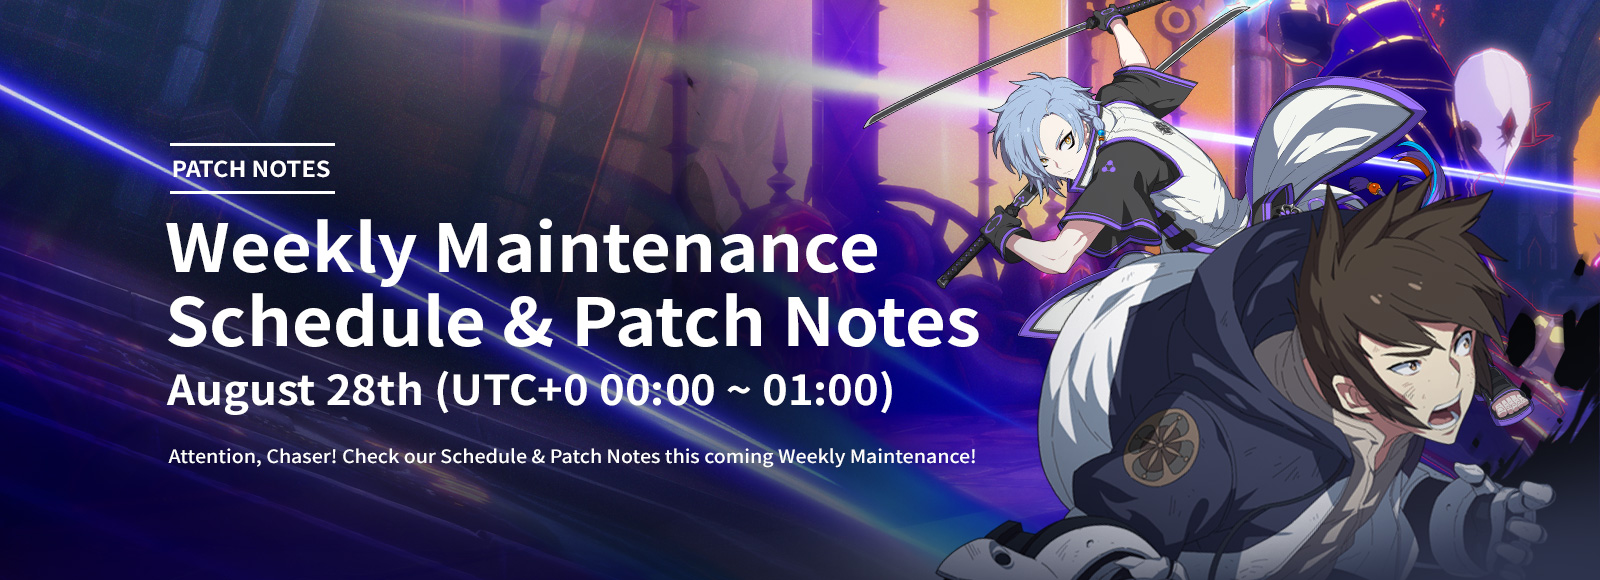 August 28th Weekly Maintenance Schedule & Patch Notes